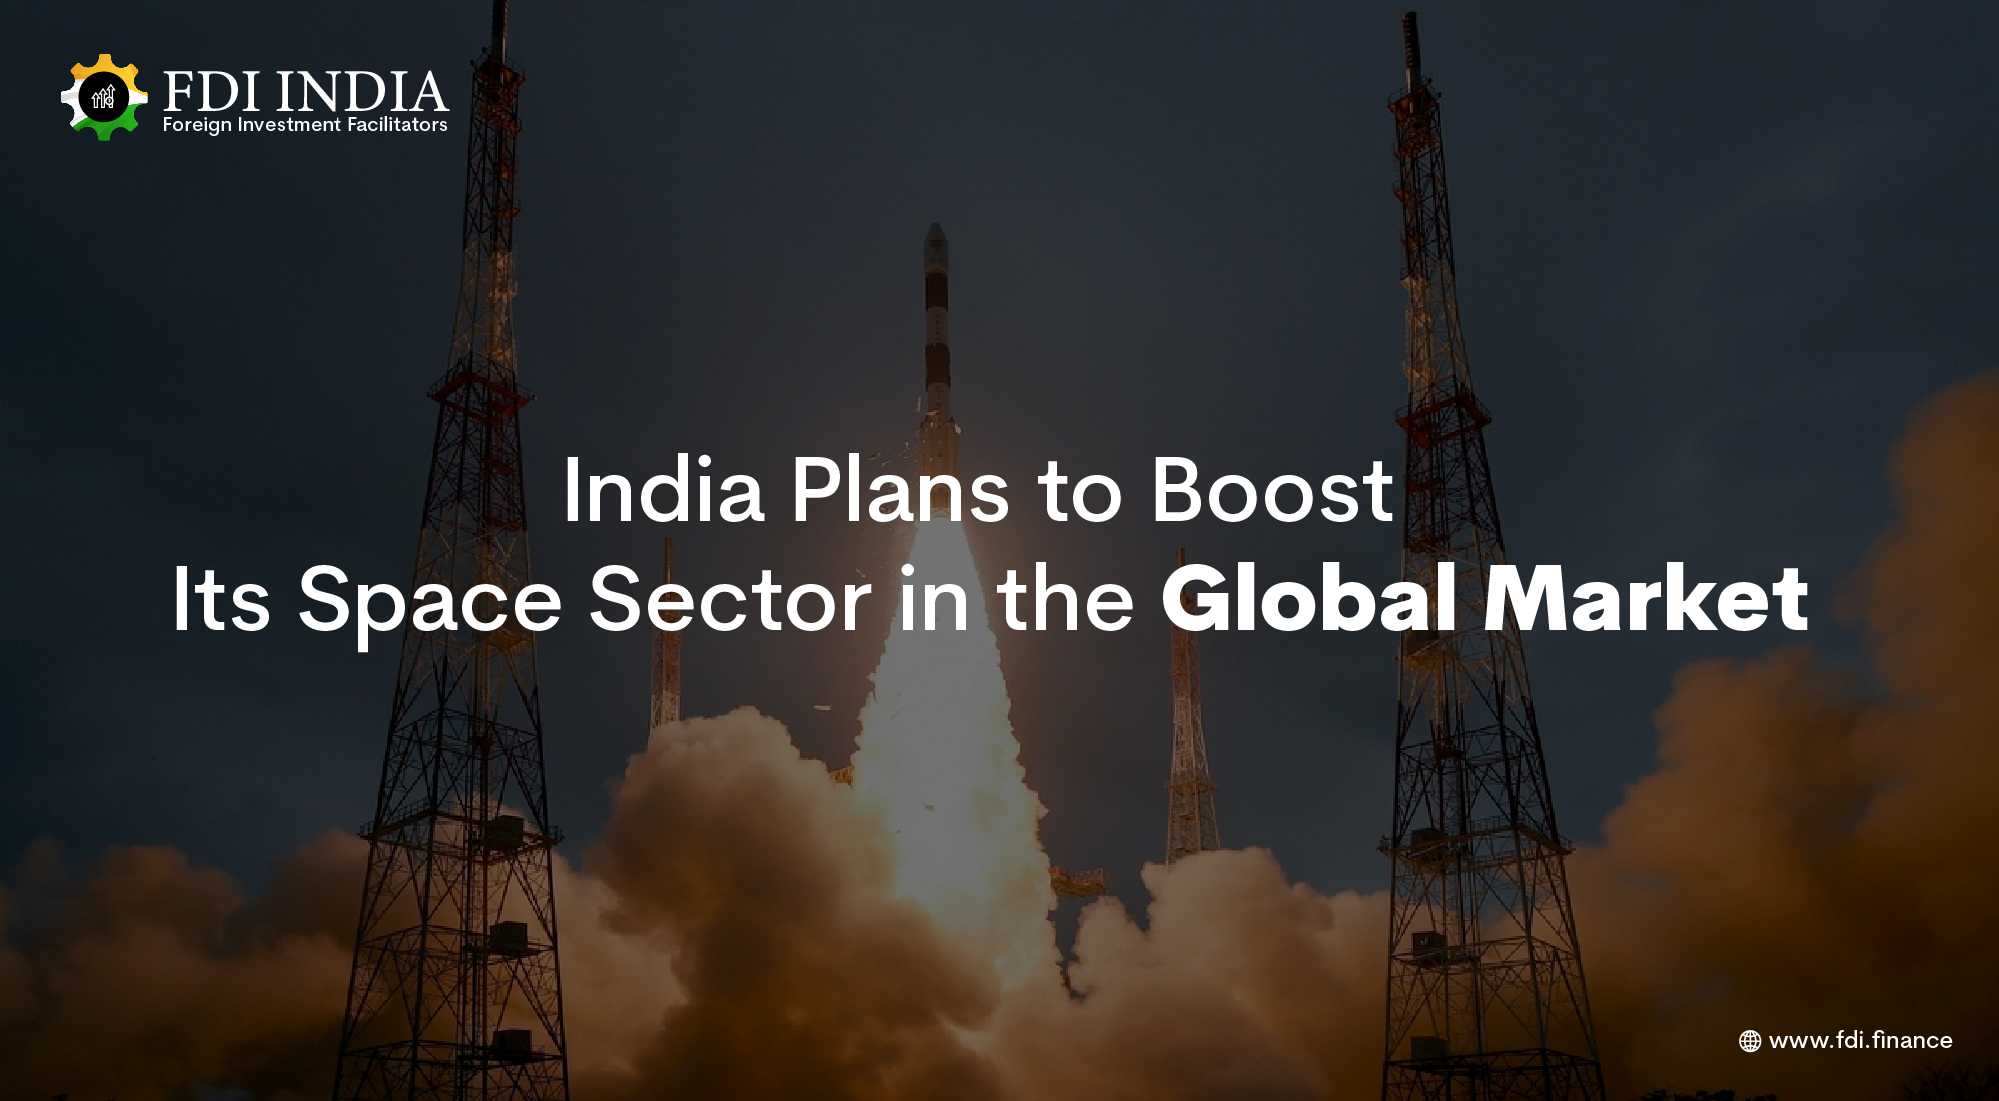 India Plans to Boost Its Space Sector in the Global Market